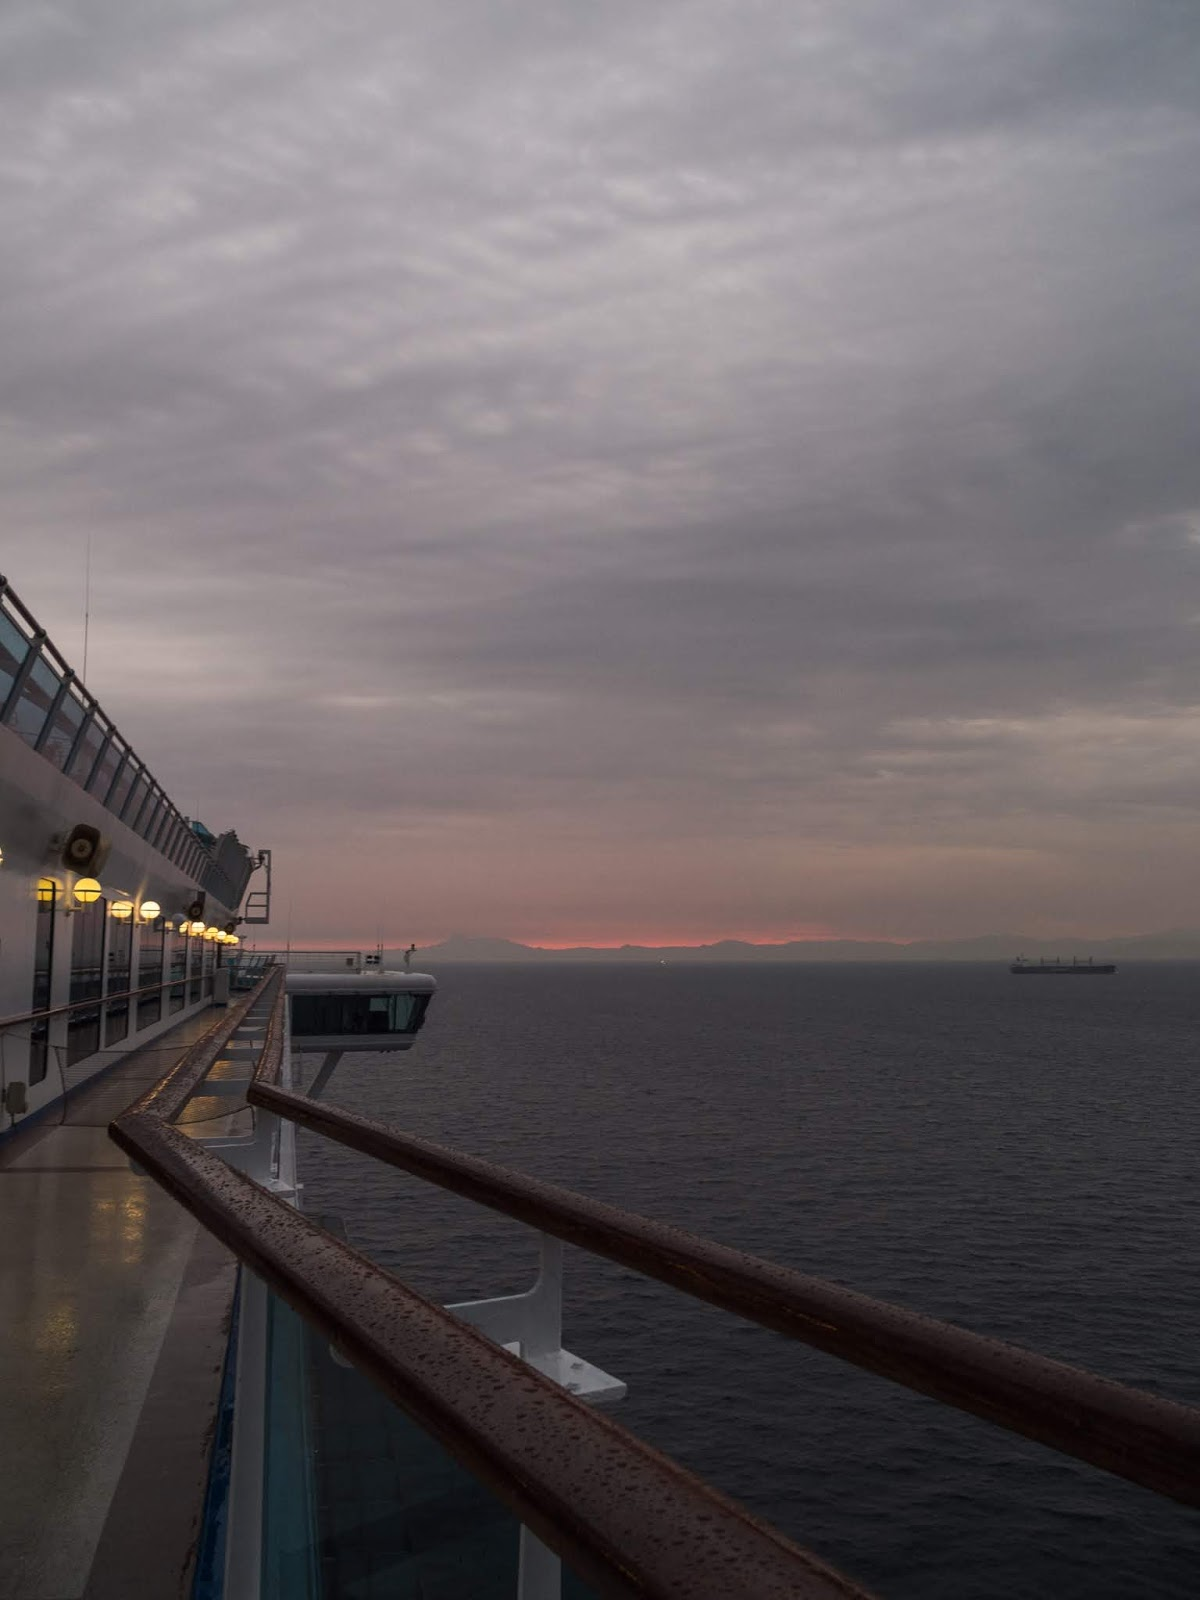 Sunrise sky from the Sapphire Princess cruise ship.